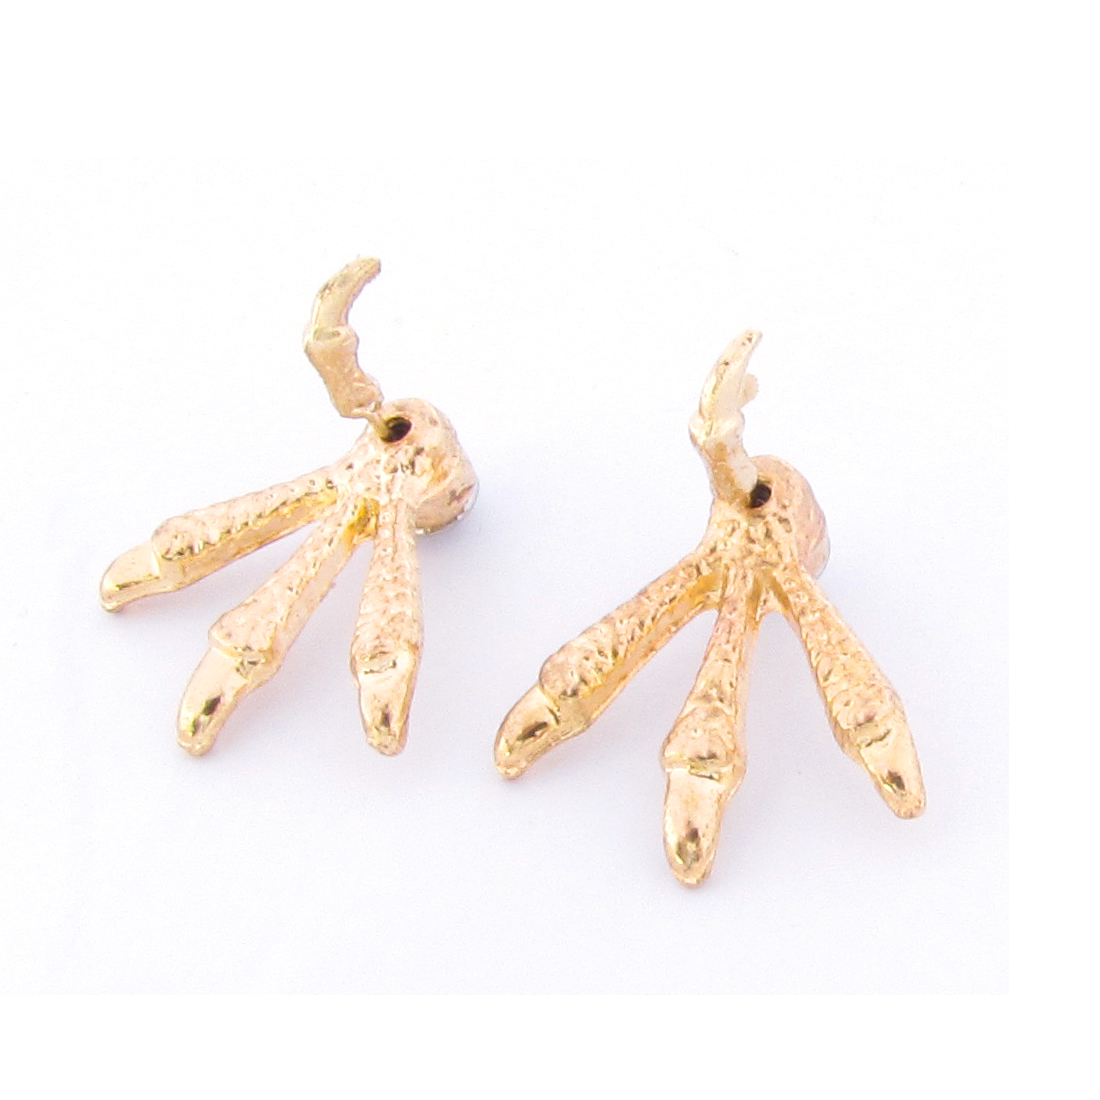 Pair Chicken Claw Shaped Ornament Stud Earrings Decor Gold Tone for Women